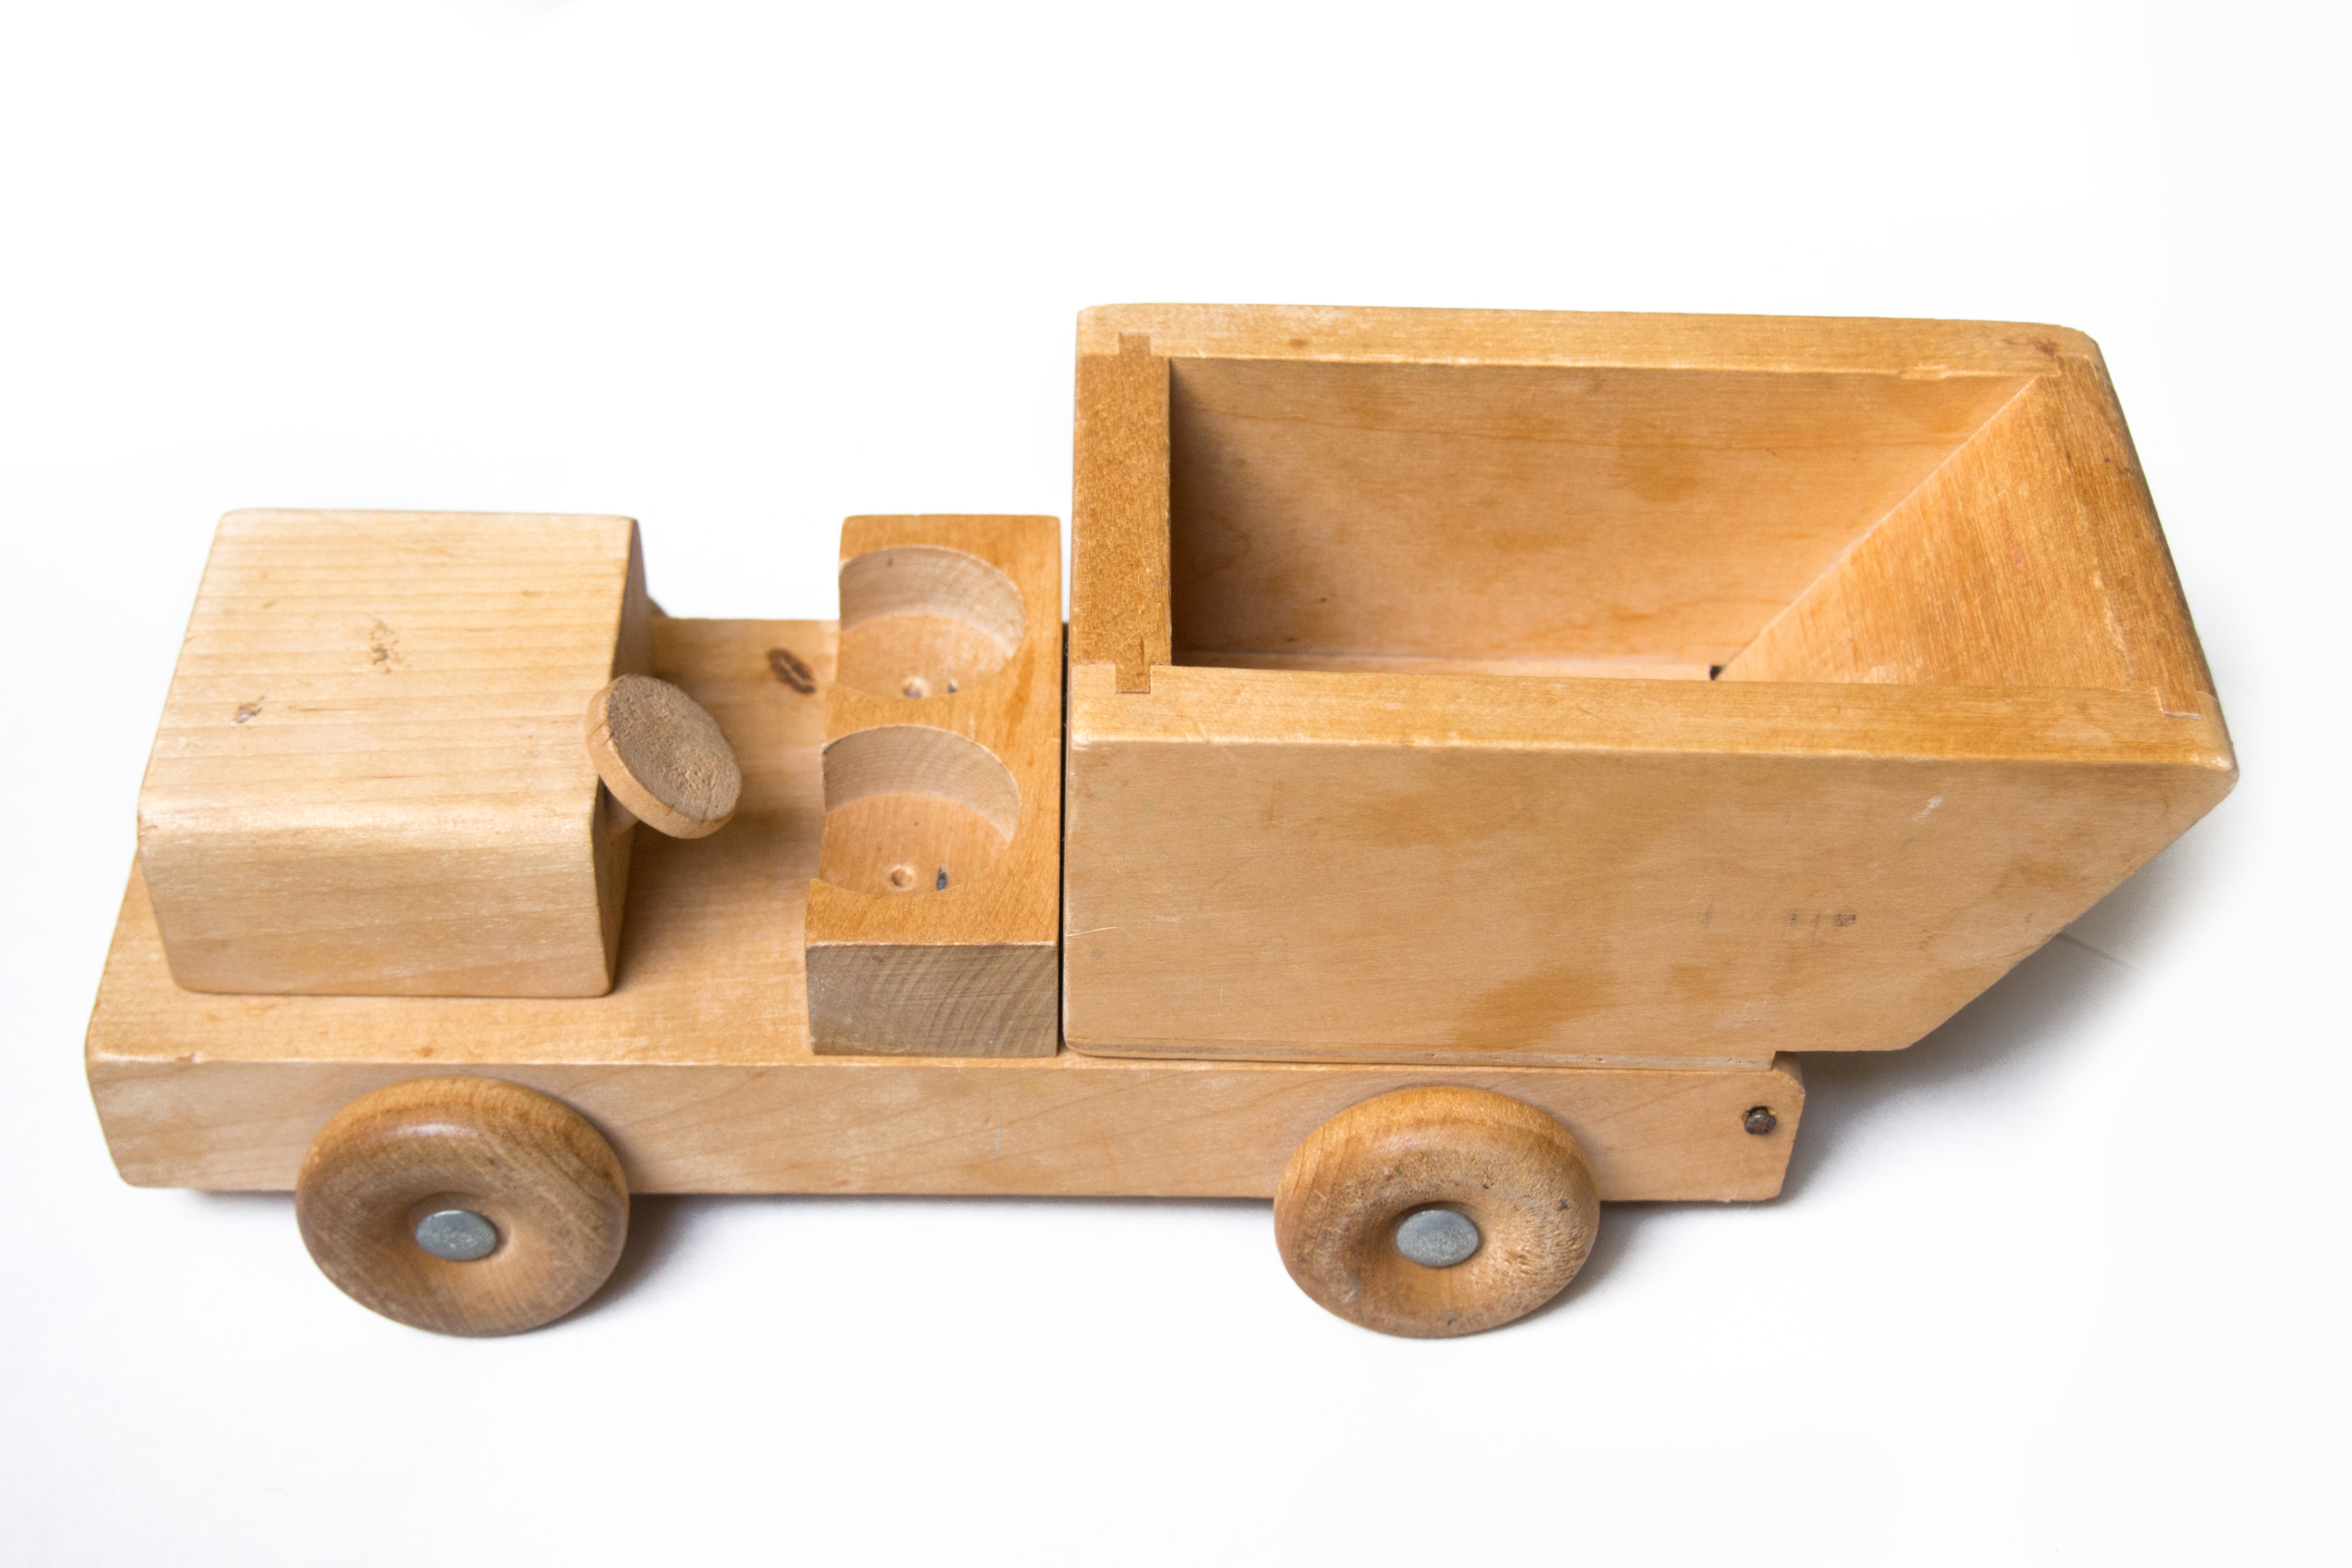 Wooden truck toy, Cabin, Traffic, Rubber, Simplicity, HQ Photo